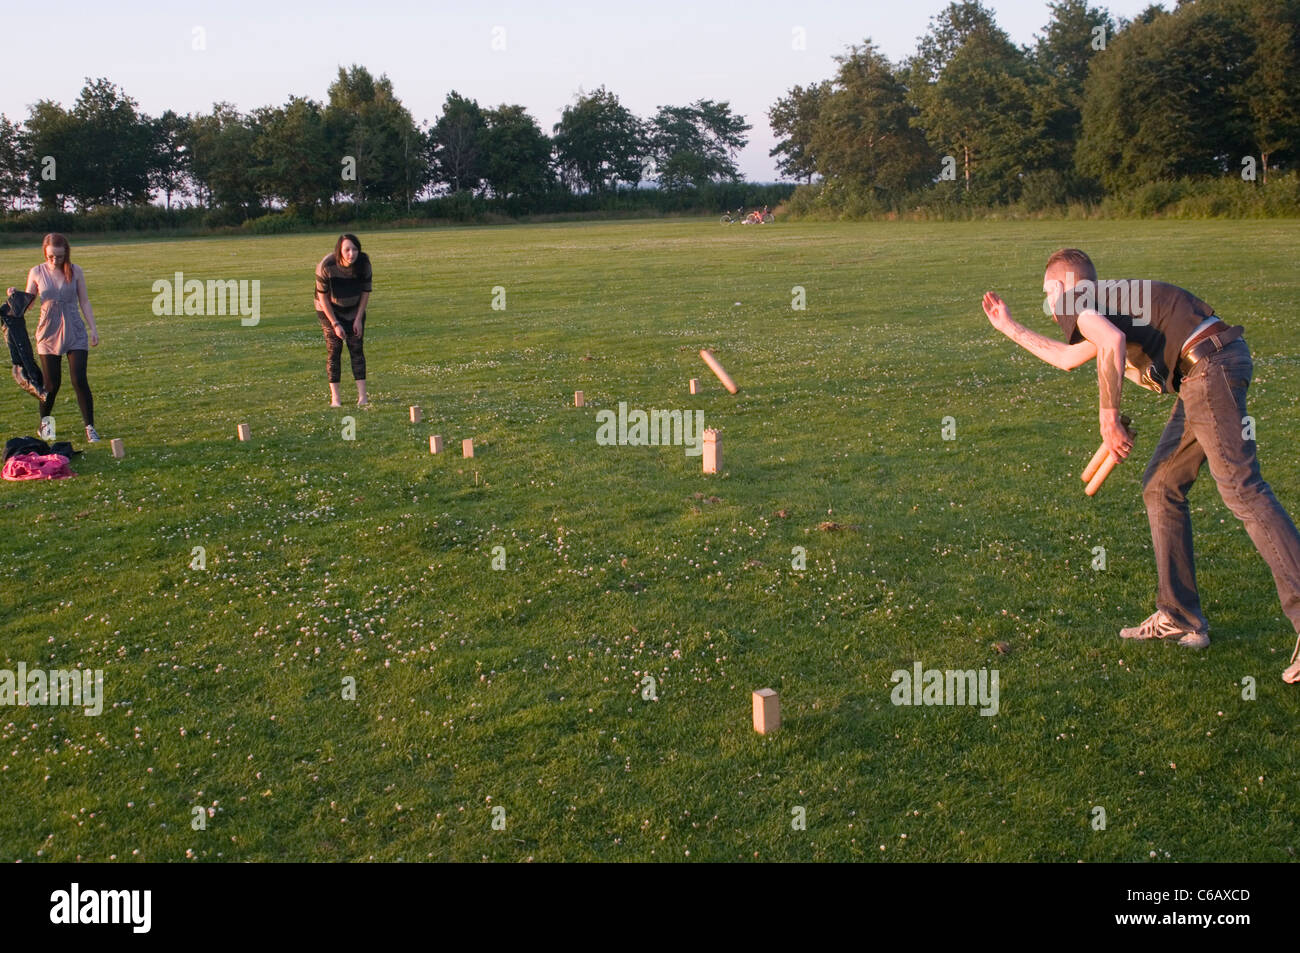 Kubb sweden swedish game games traditional people play playing players outdoor bowling horseshoes skill tactics - Stock Image